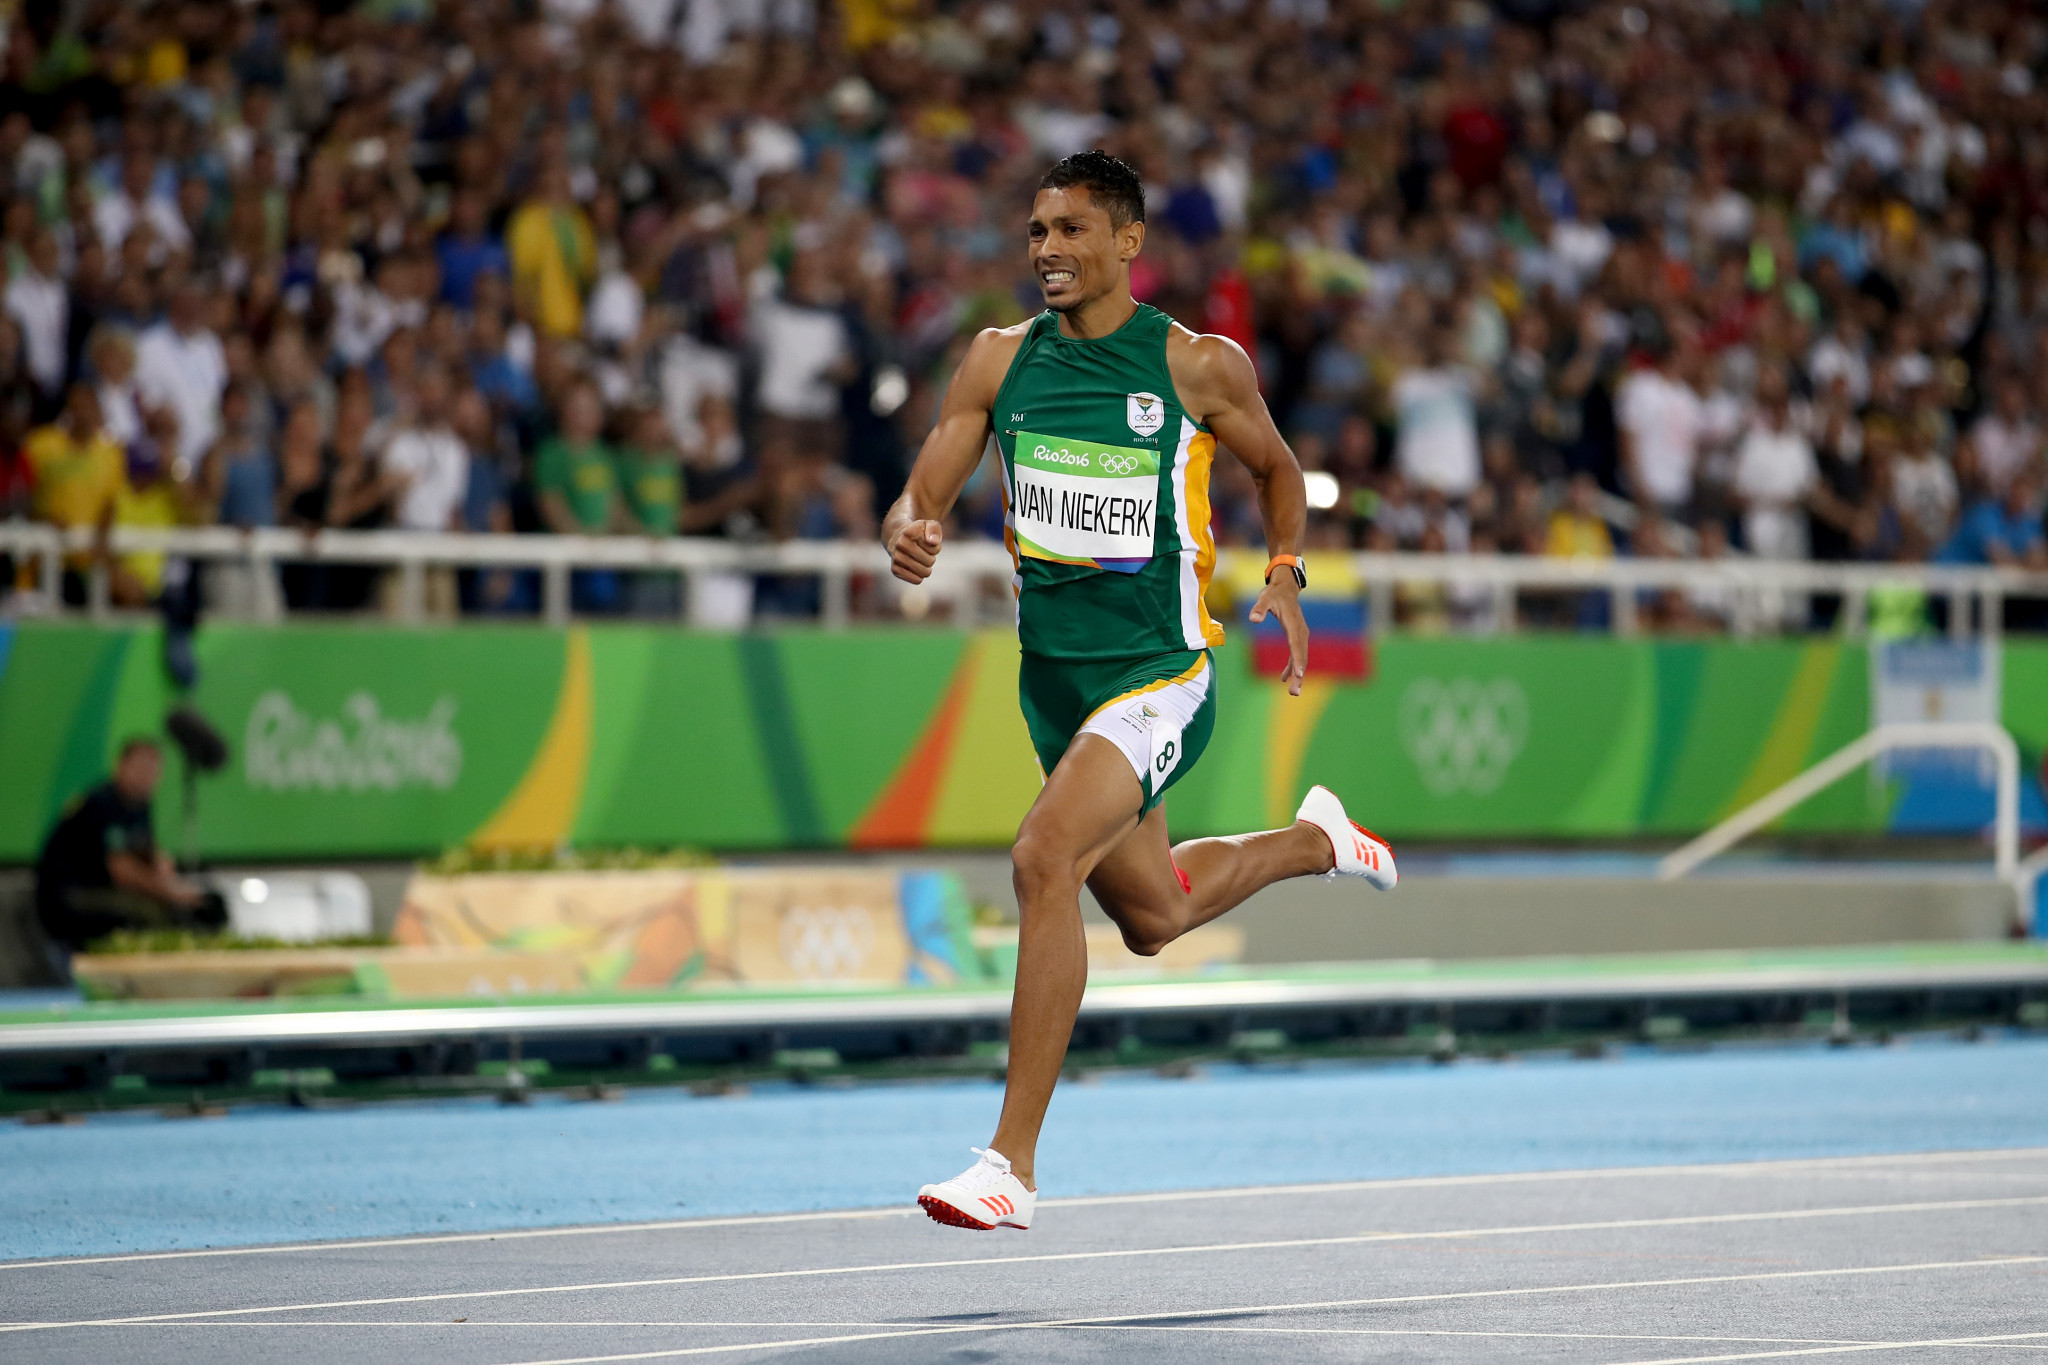 Wayde van Niekerk earned an Olympic title and broke the men's 400m world record at Rio 2016 ©Getty Images